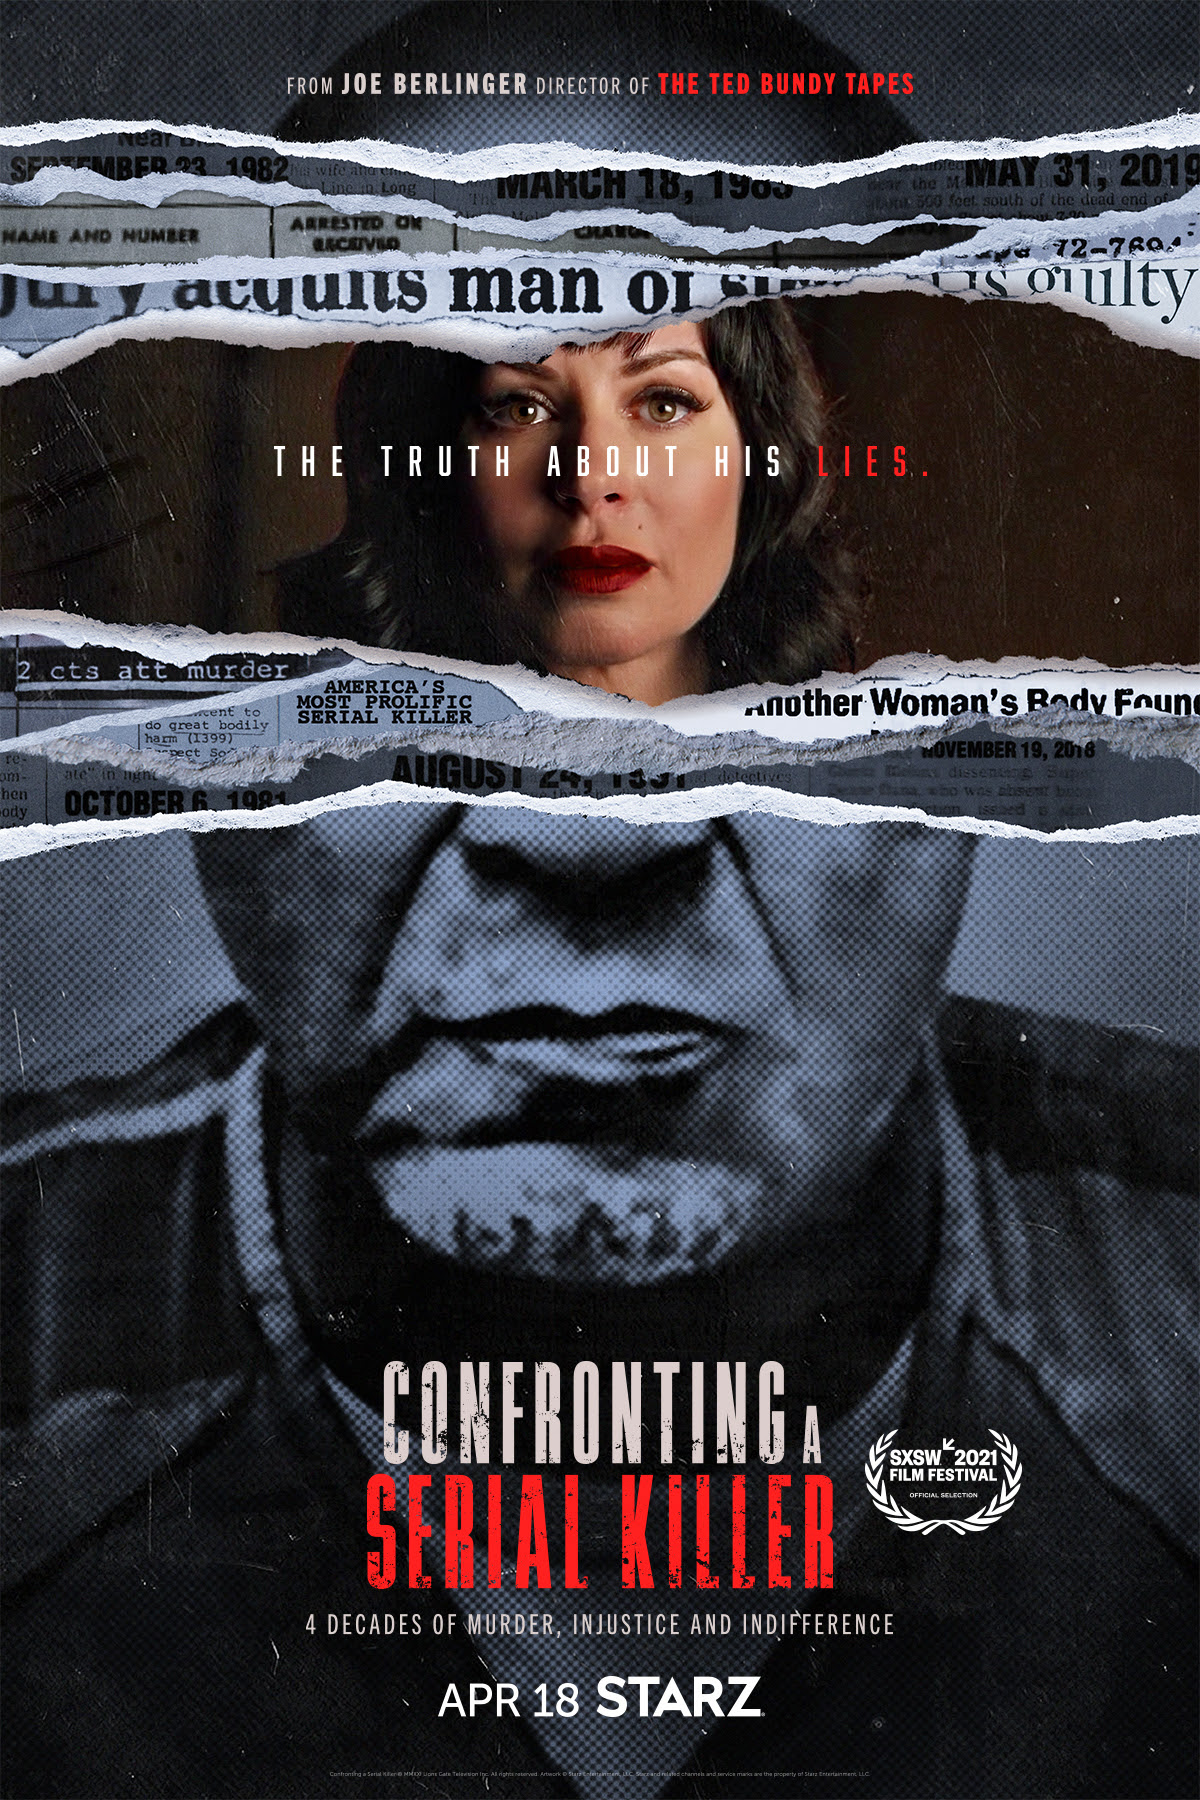 confronting a serial killer - new starz shows